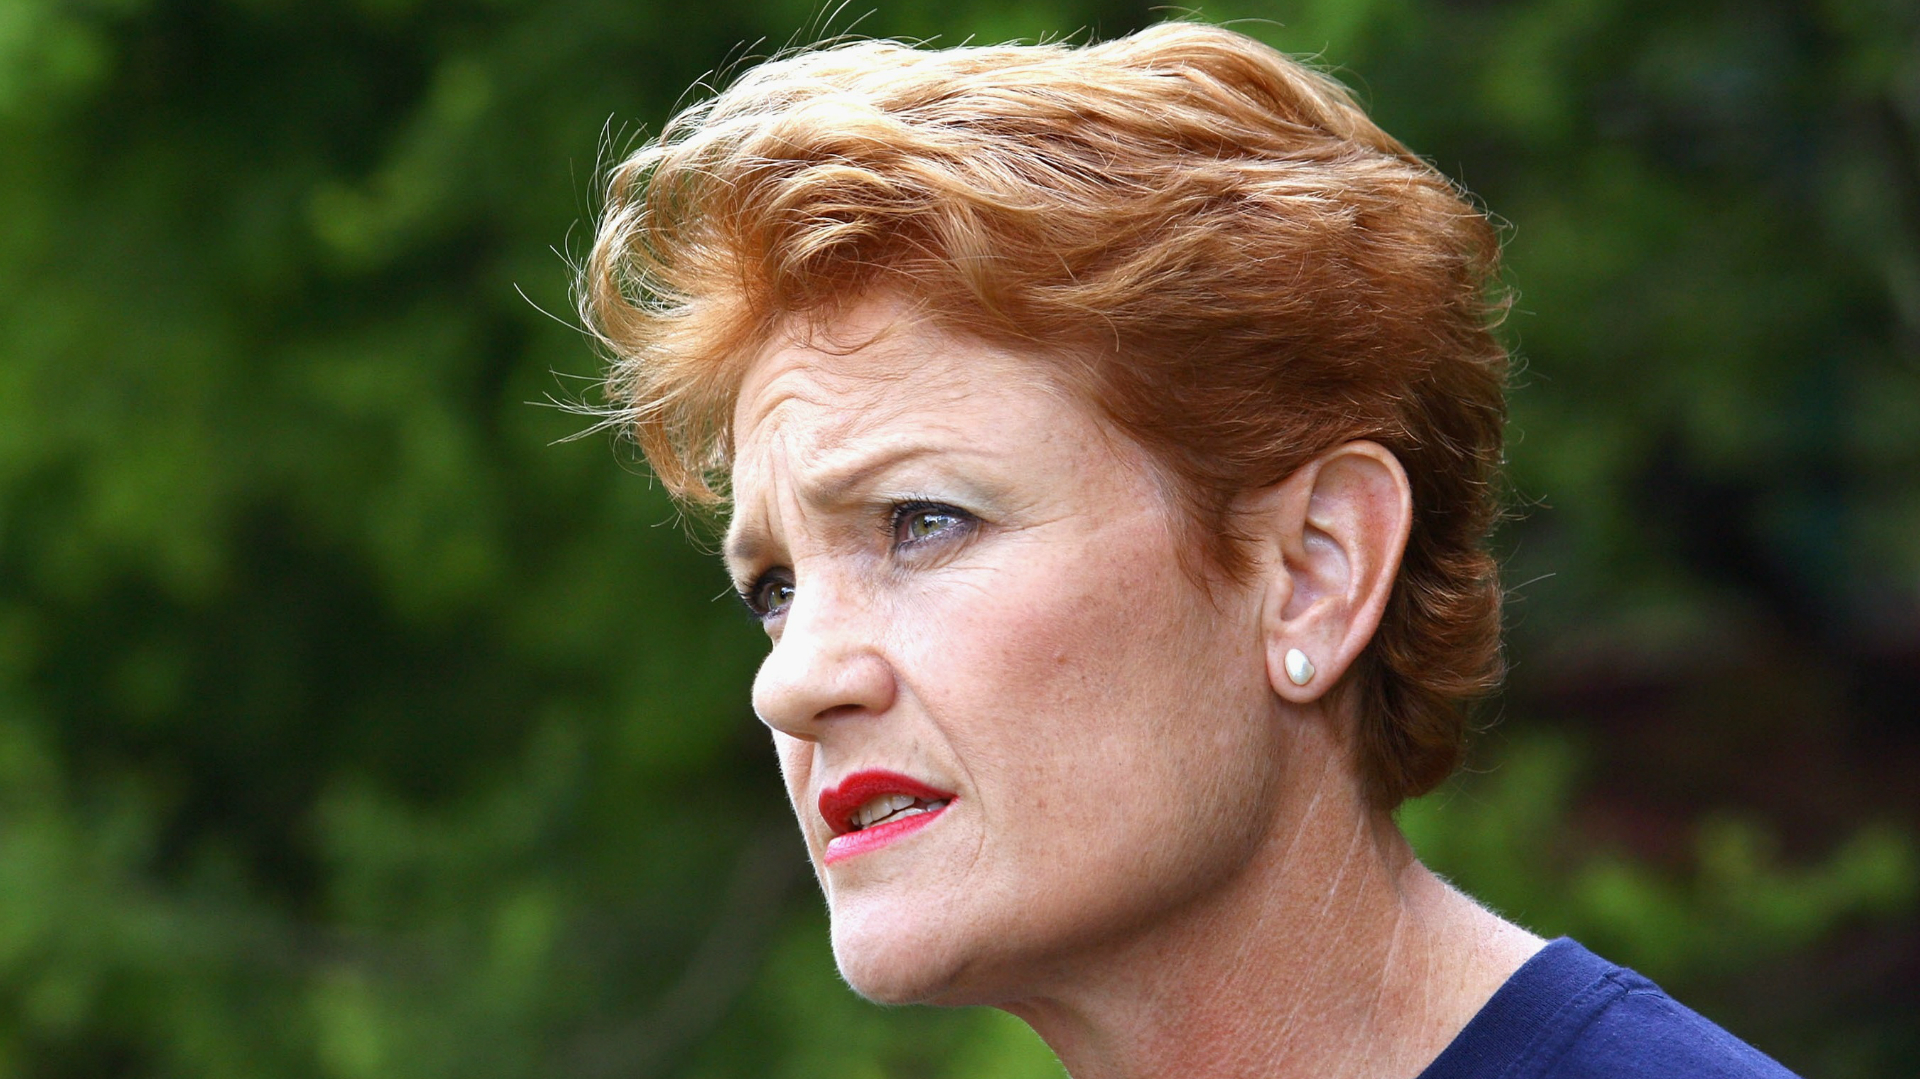 an analysis of pauline hansons influence in the australian politics Pauline hanson's one nation party first burst on to australian politics in the mid-1990s when it campaigned on an anti-immigration platform warning australia risked being swamped by asians in 1998 the party had a single candidate elected to the australian.